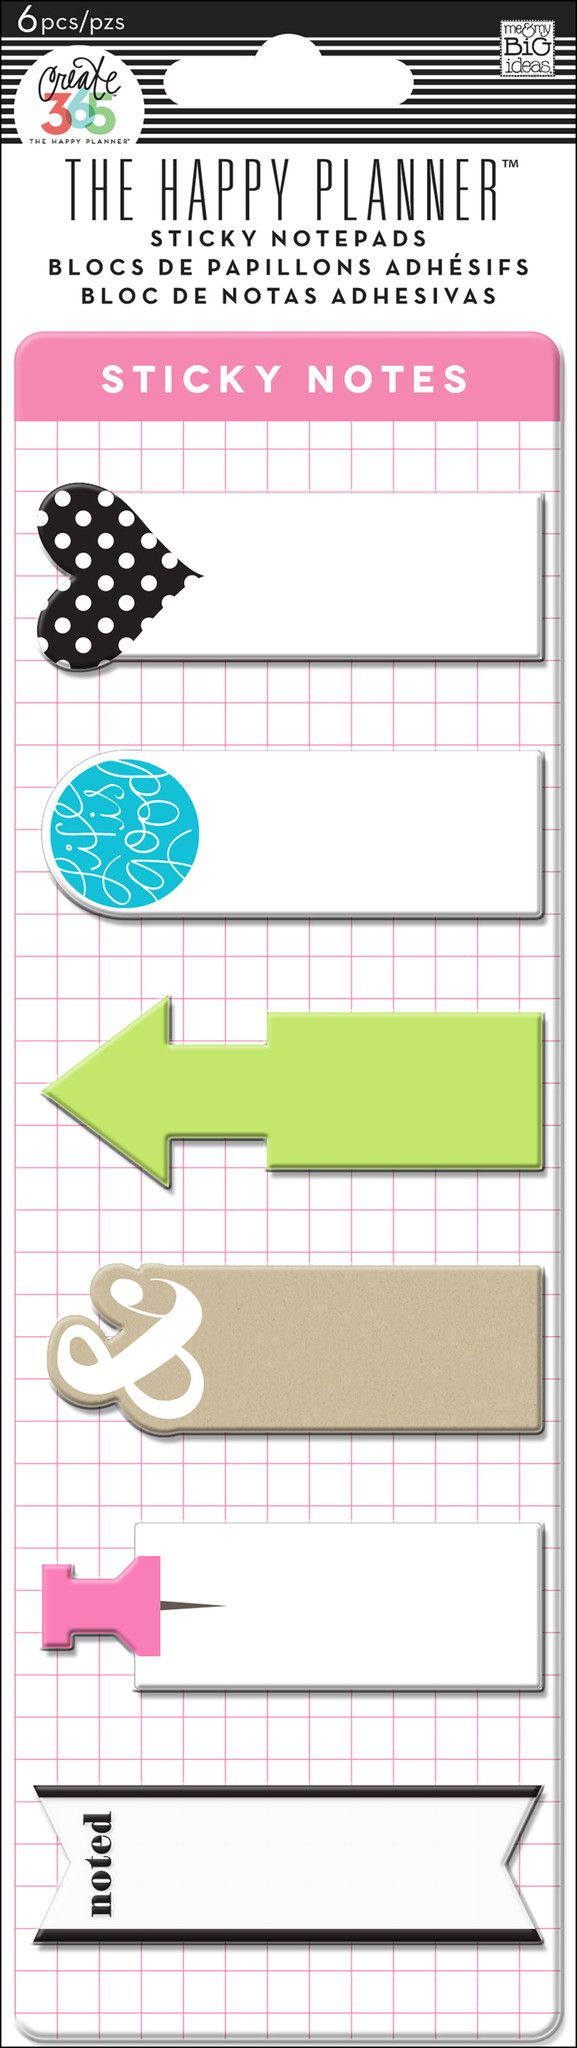 Sticky notes are the perfect accessory when you need to rearrange your schedule or to do list. Each package includes: - 6 designs with 20 self-adhesive notes per design. Item #:POSM-03